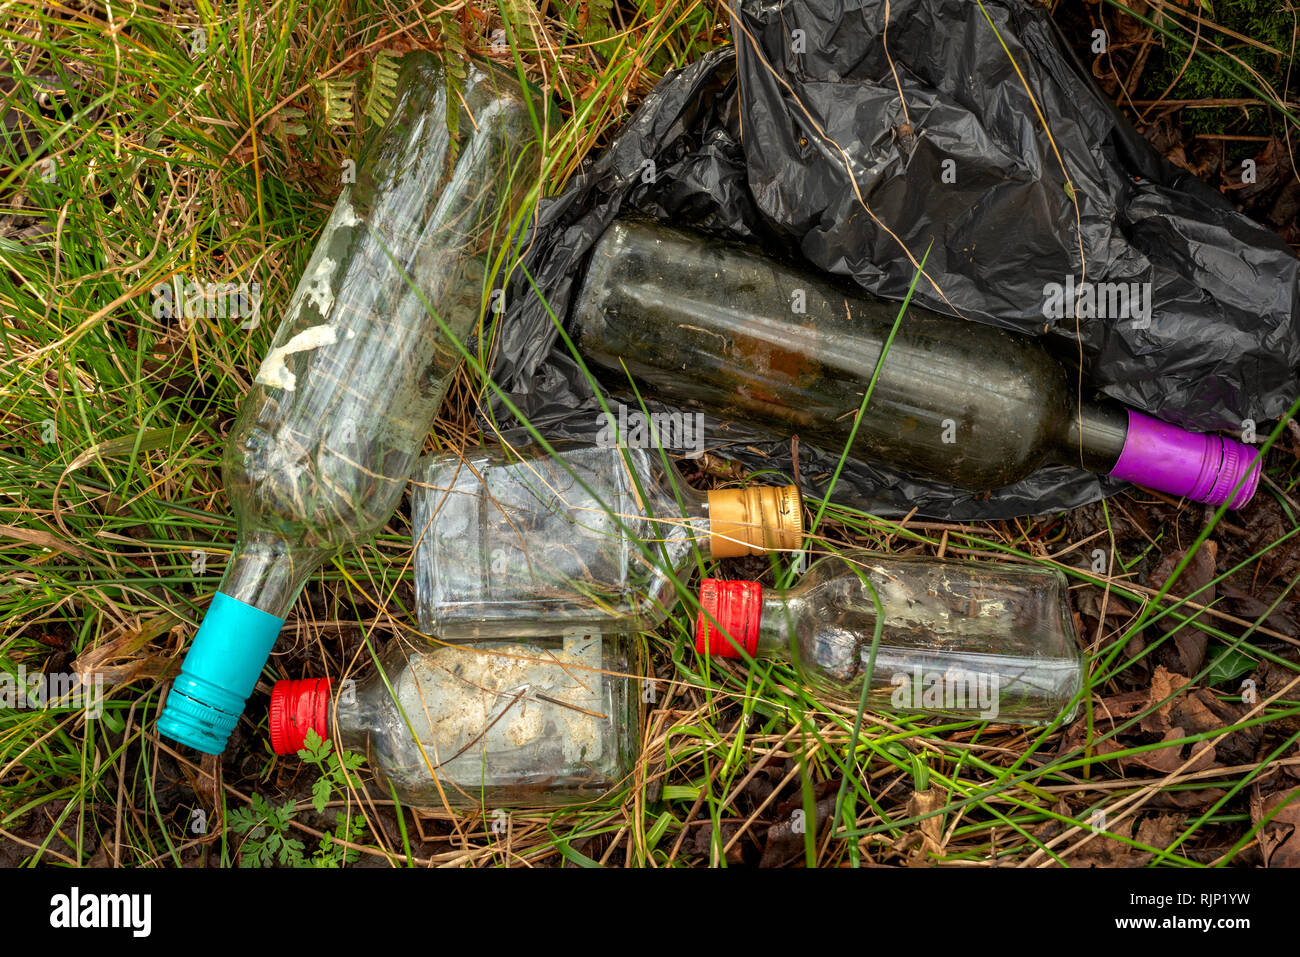 Litter littering problem. Garbage waste glass wine and spirits bottles dumped in forest. Bottle garbage pollution environmental problem. - Stock Image